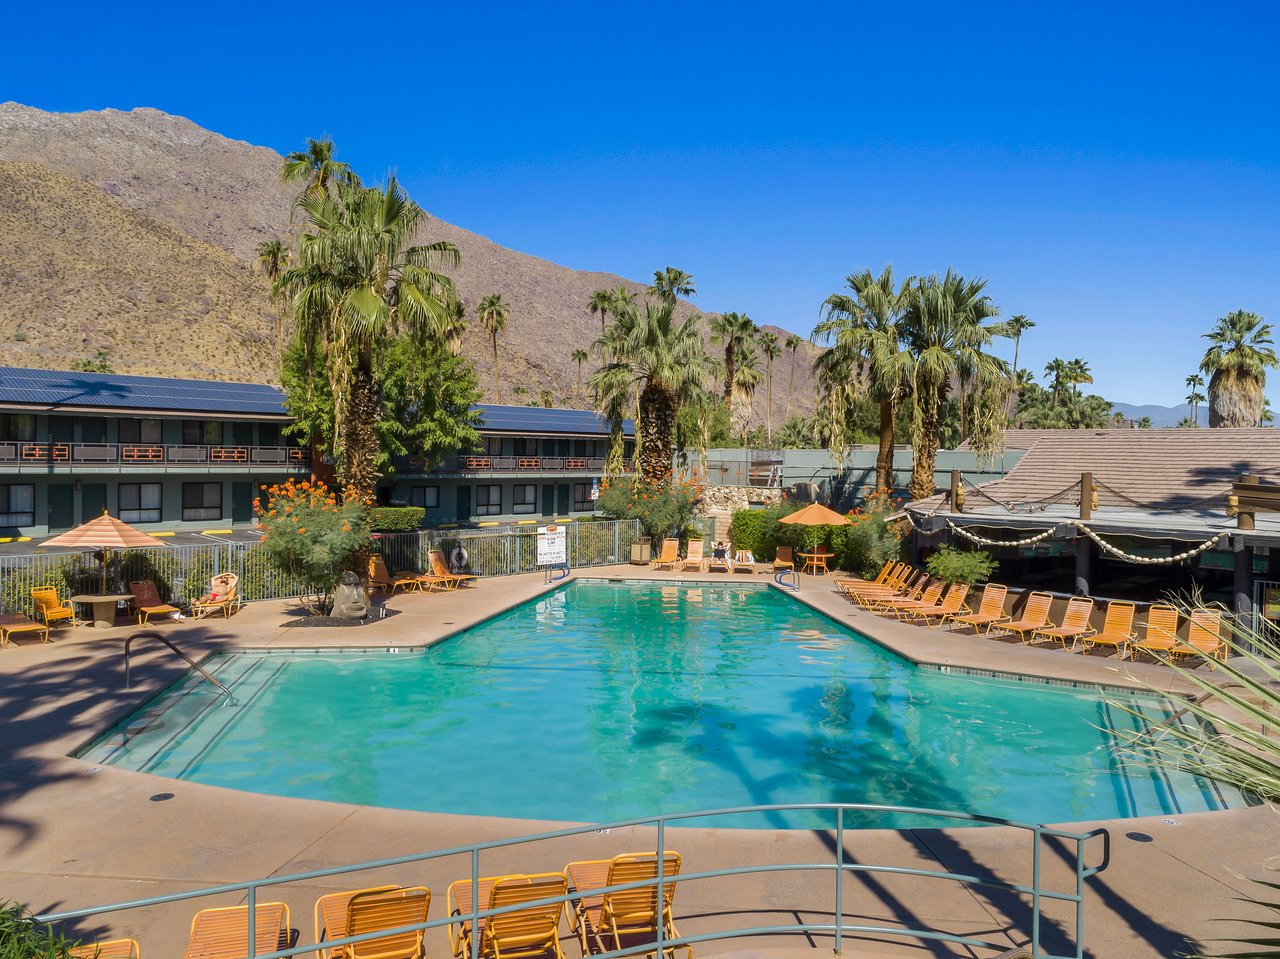 The 10 Best Cheap Hotels In Palm Springs Dec 2019 With